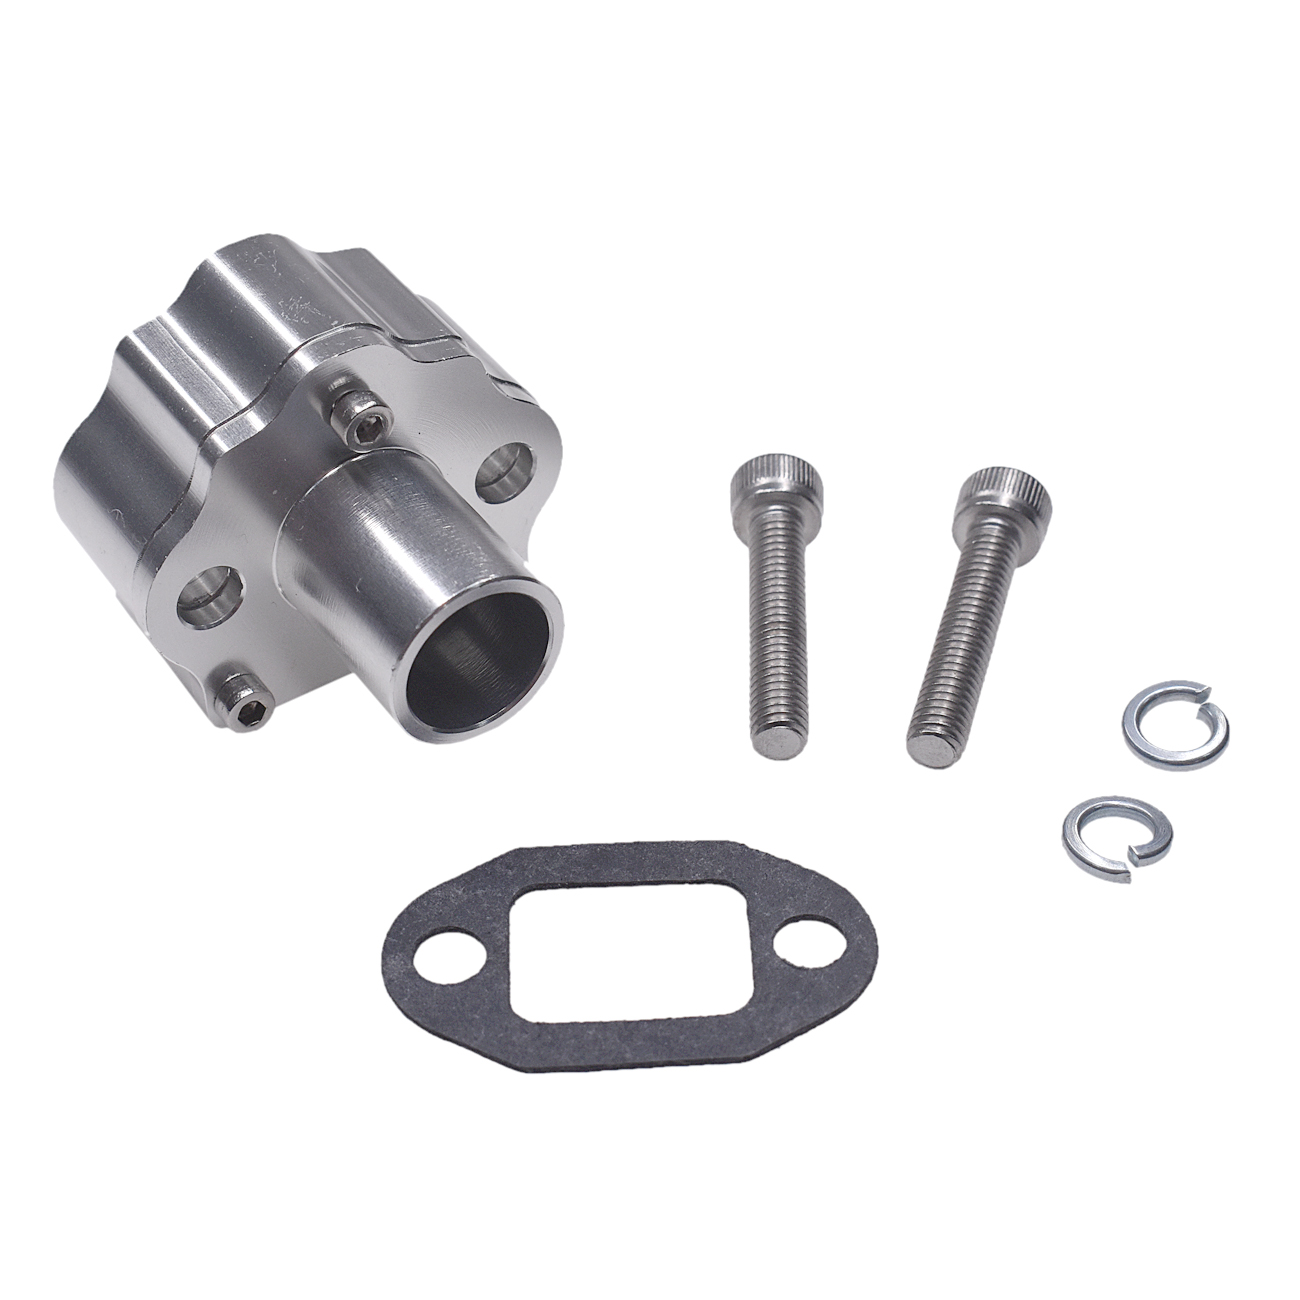 Silver 32mm Reed Valve Air Manifold Intake For 60cc 66cc 80cc Motorized Bike